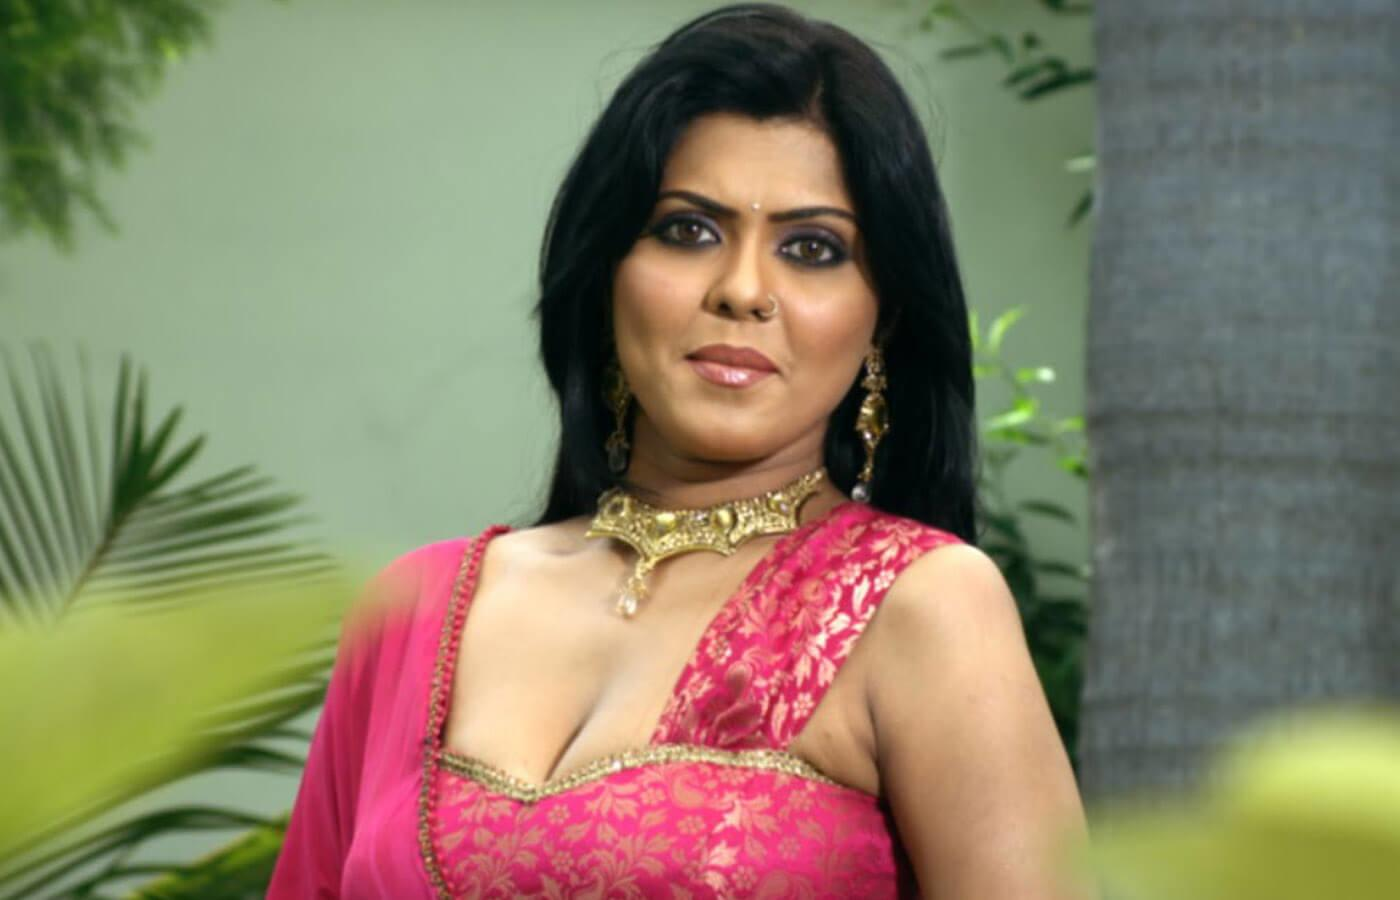 Rinku Ghosh HD Wallpaper, Image, Photo